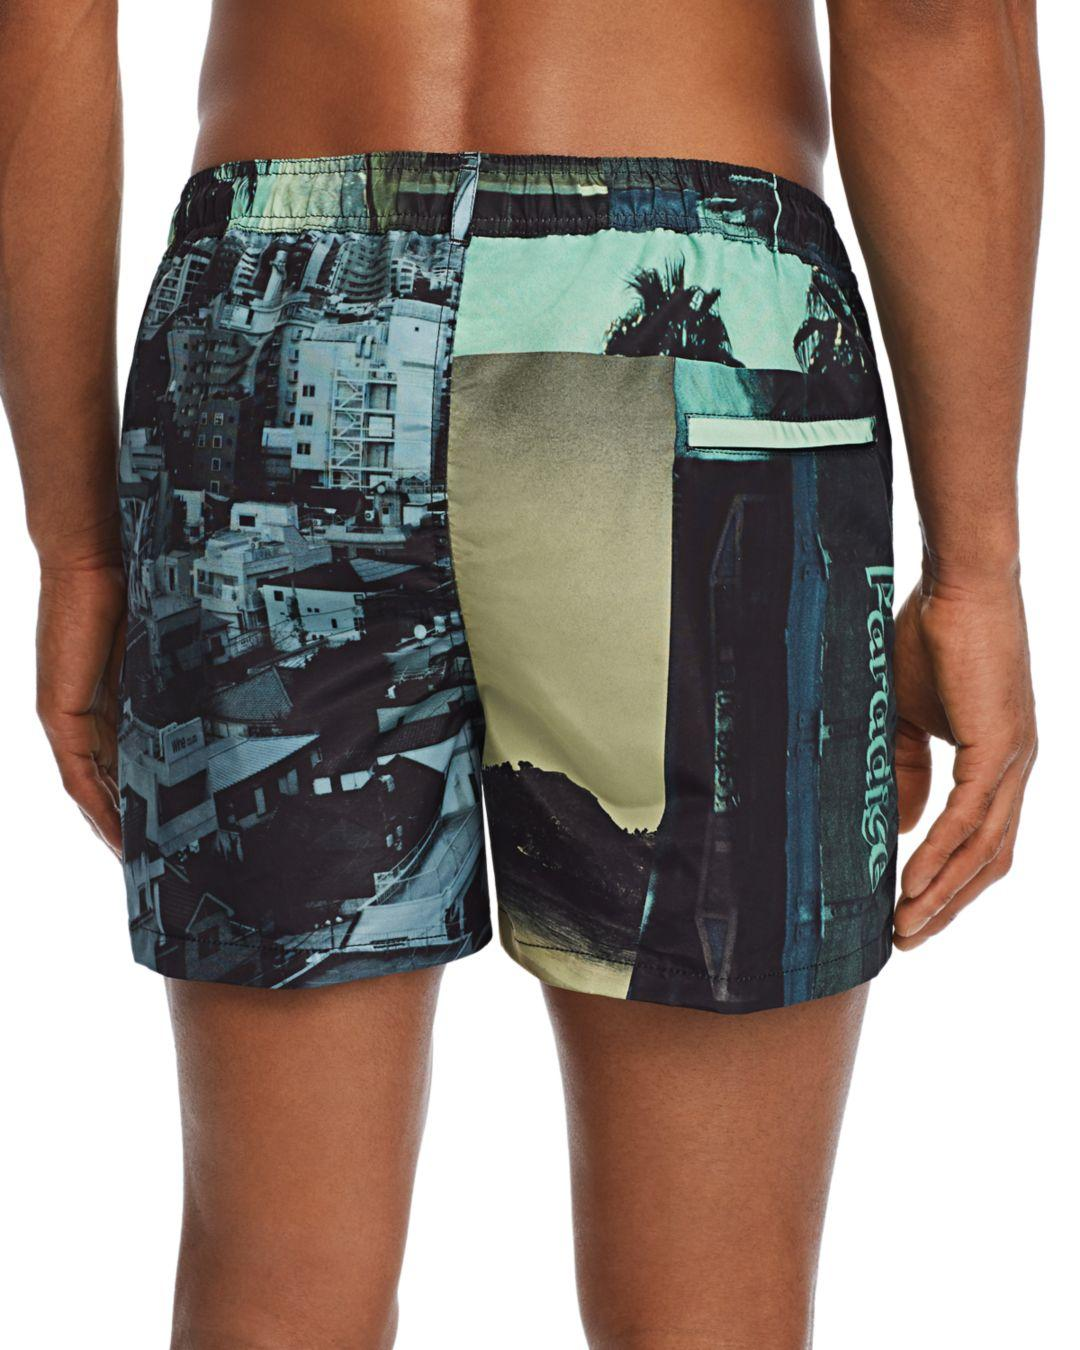 3a0cff24f5 Lyst - PS by Paul Smith Paradise Swim Trunks in Green for Men